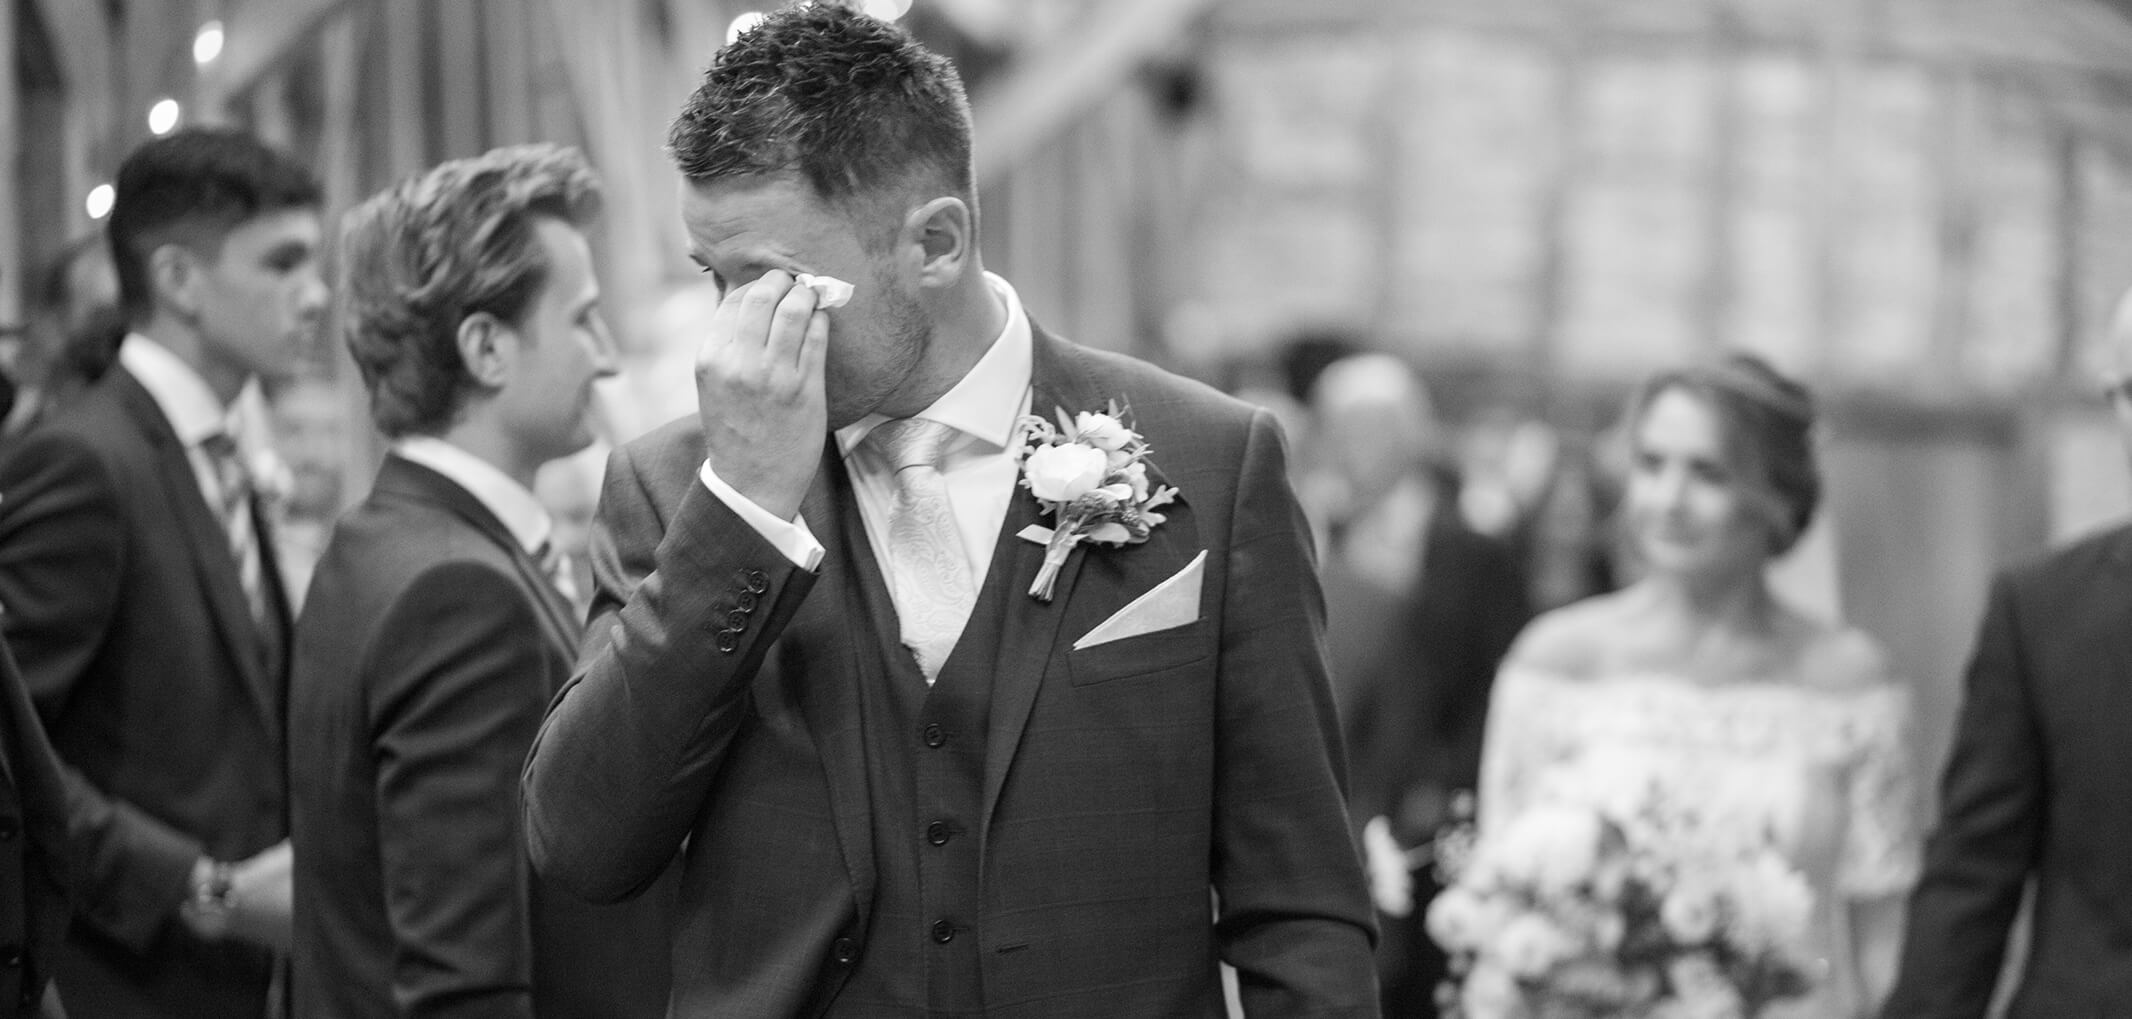 A groom wipes away a tear upon seeing his bride walk down the aisle